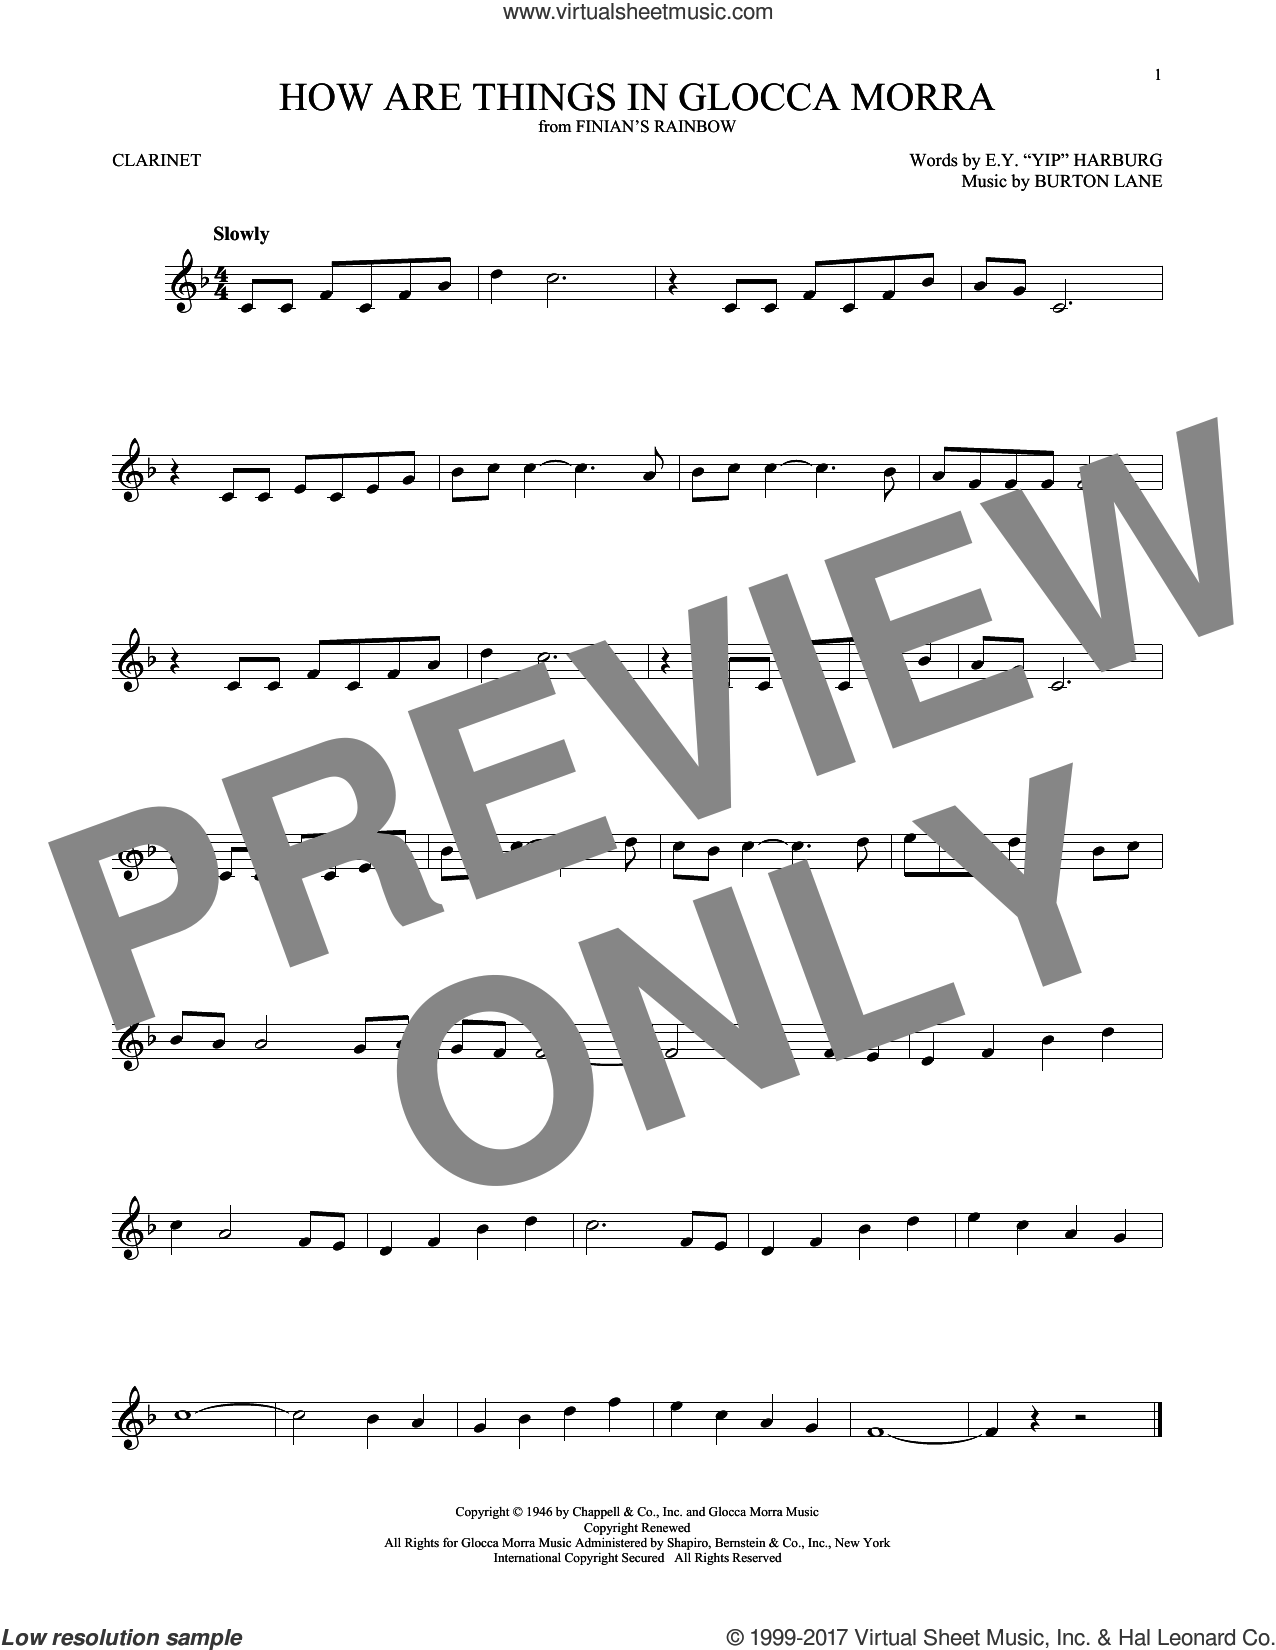 How Are Things In Glocca Morra sheet music for clarinet solo by E.Y. Harburg, Tommy Dorsey and Burton Lane, intermediate skill level